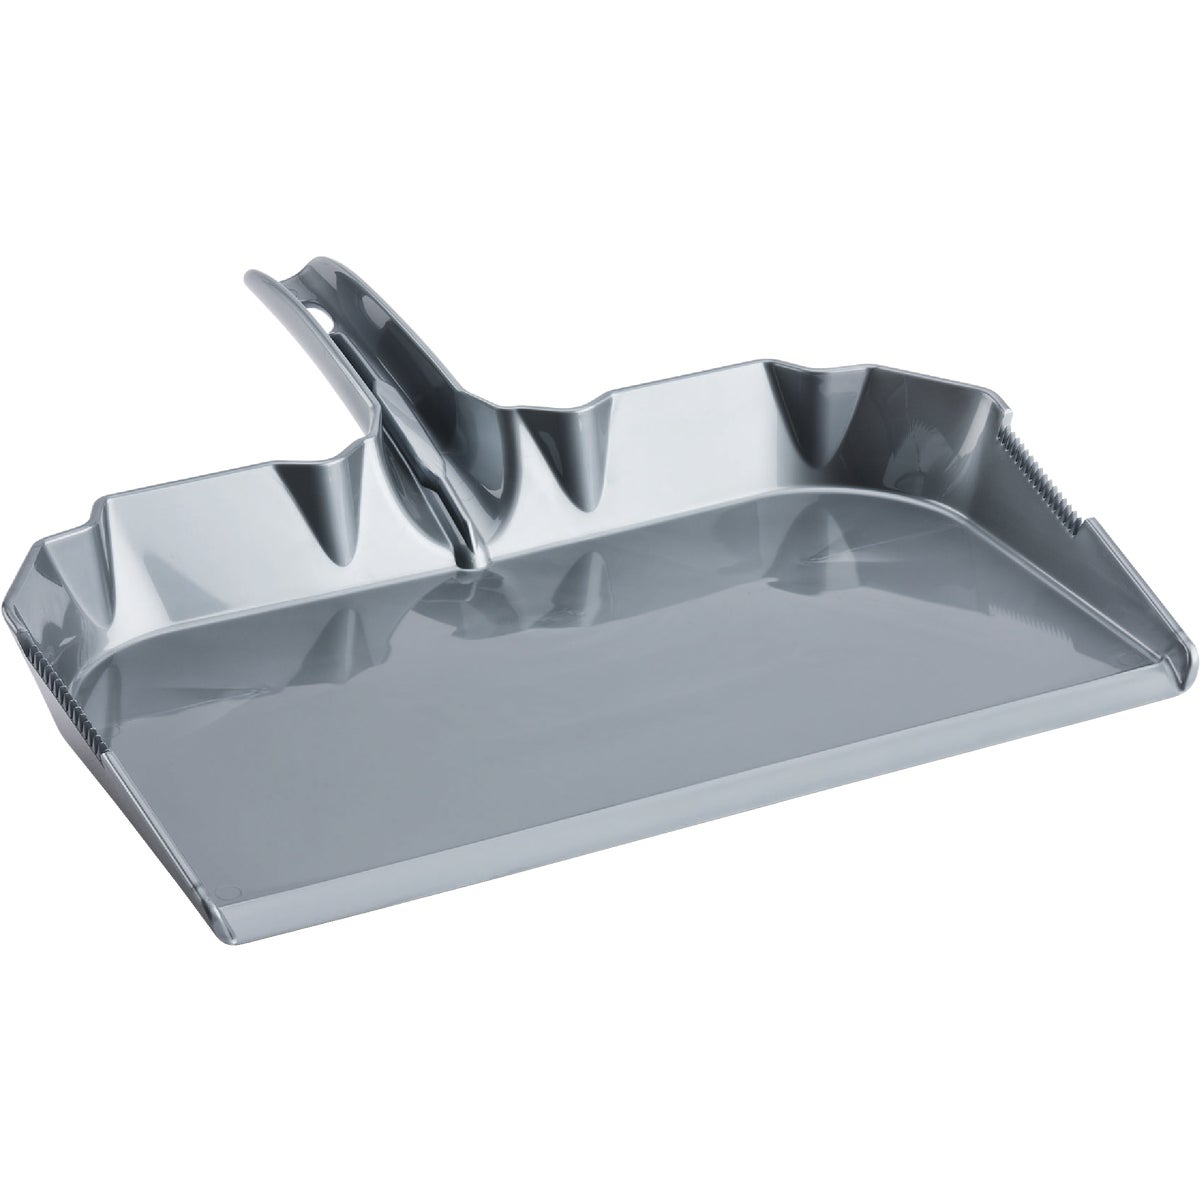 INDUSTRIAL GRADE DUSTPAN - 581 by The Libman Company